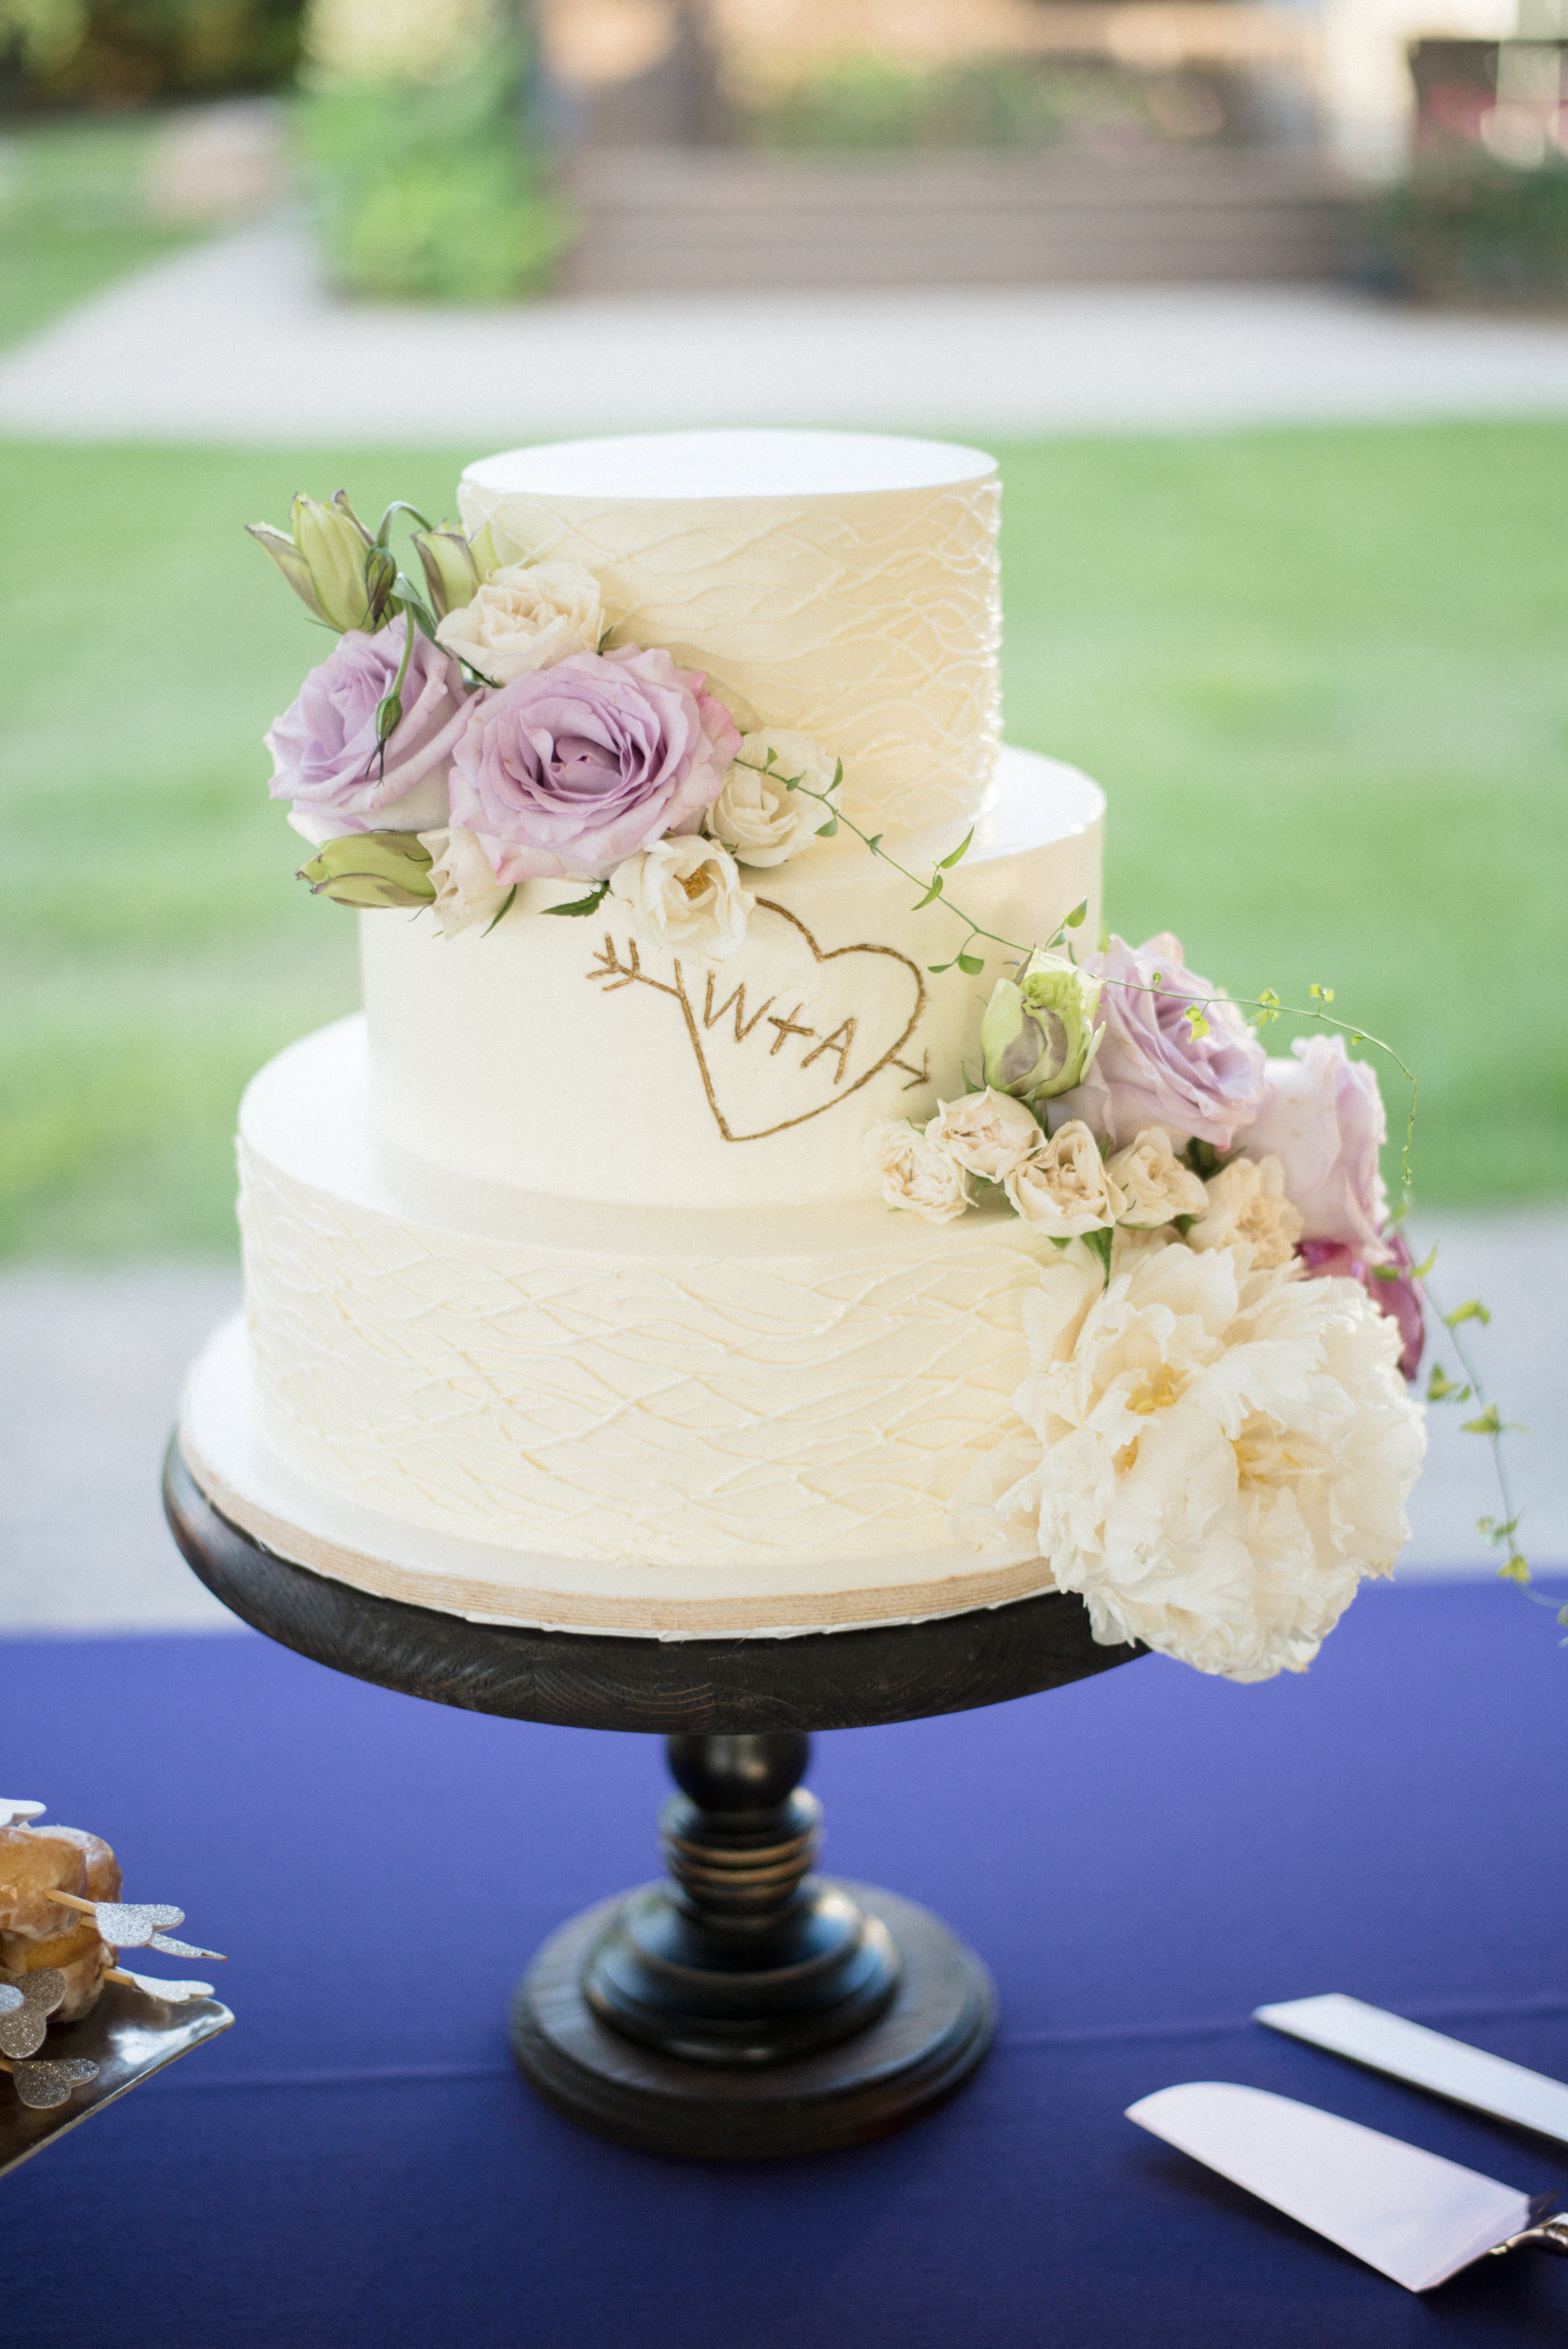 Rustic wedding cake by Declare Cakes at The Island House